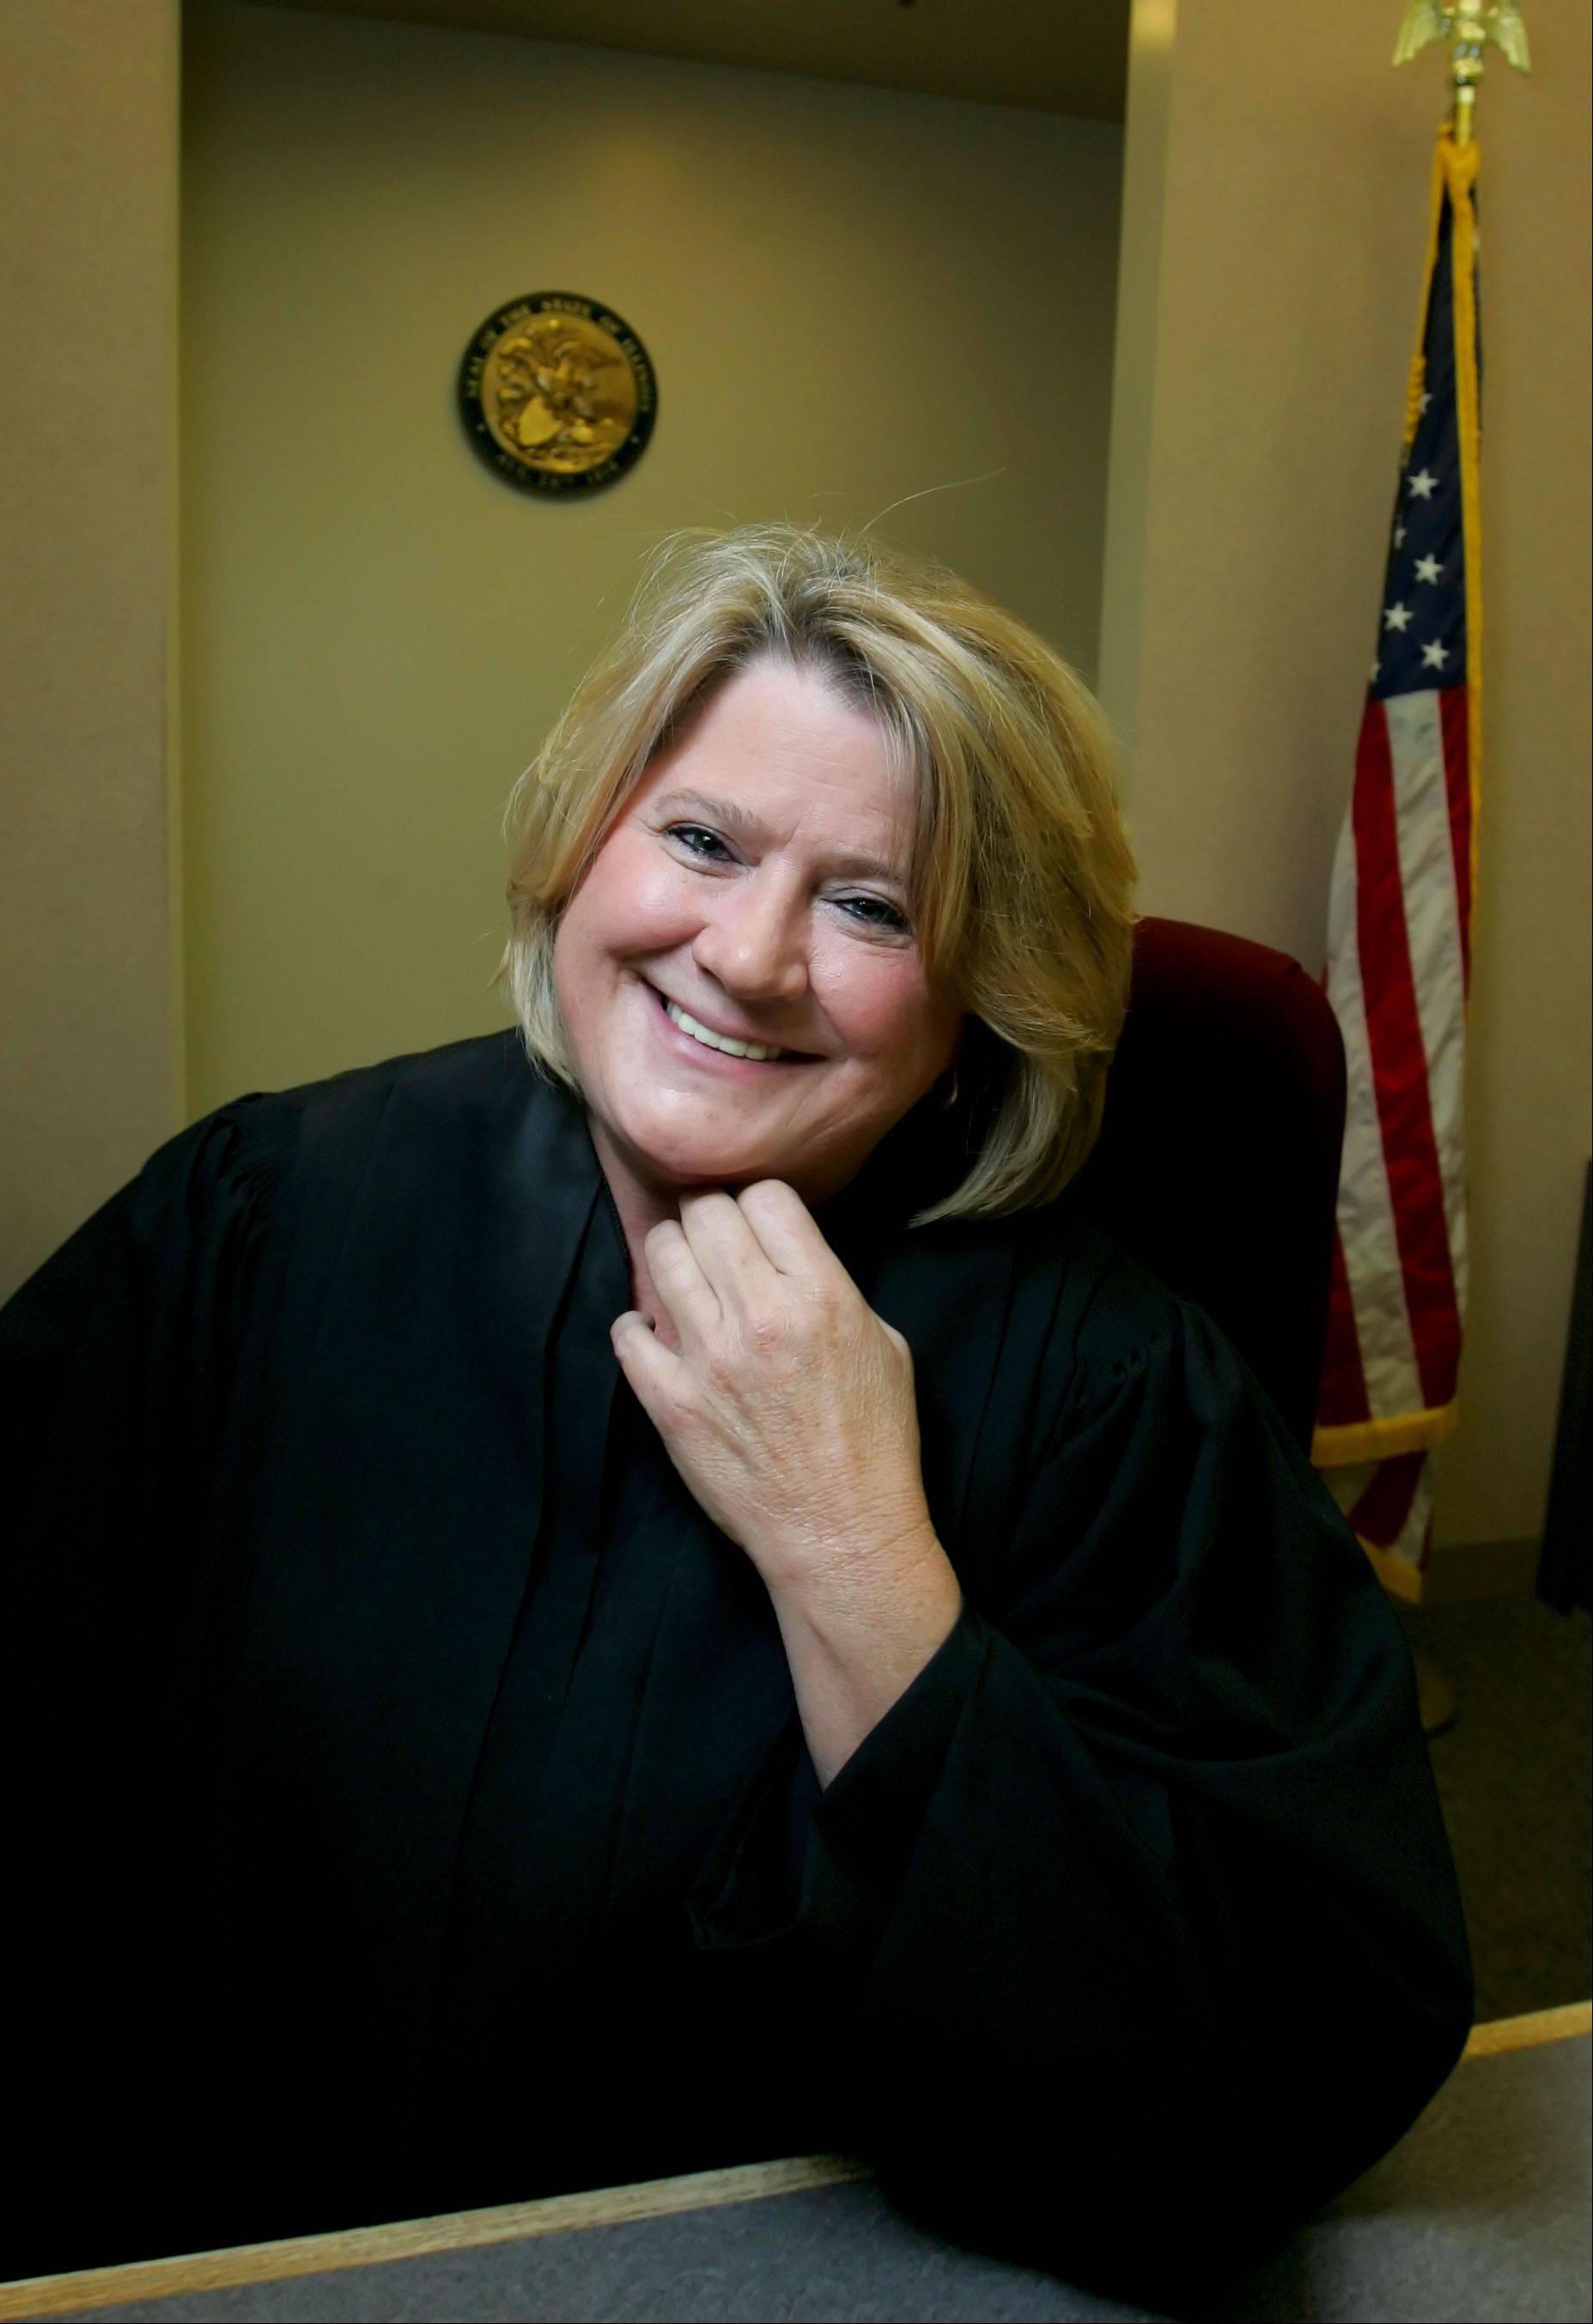 Lake County Circuit Judge Valerie Boettle Ceckowski, who presides over Lake County's juvenile courts, is an advocate for the year-old Offender Job Readiness Program. The program trains juvenile offenders to find work and helps place them in jobs.